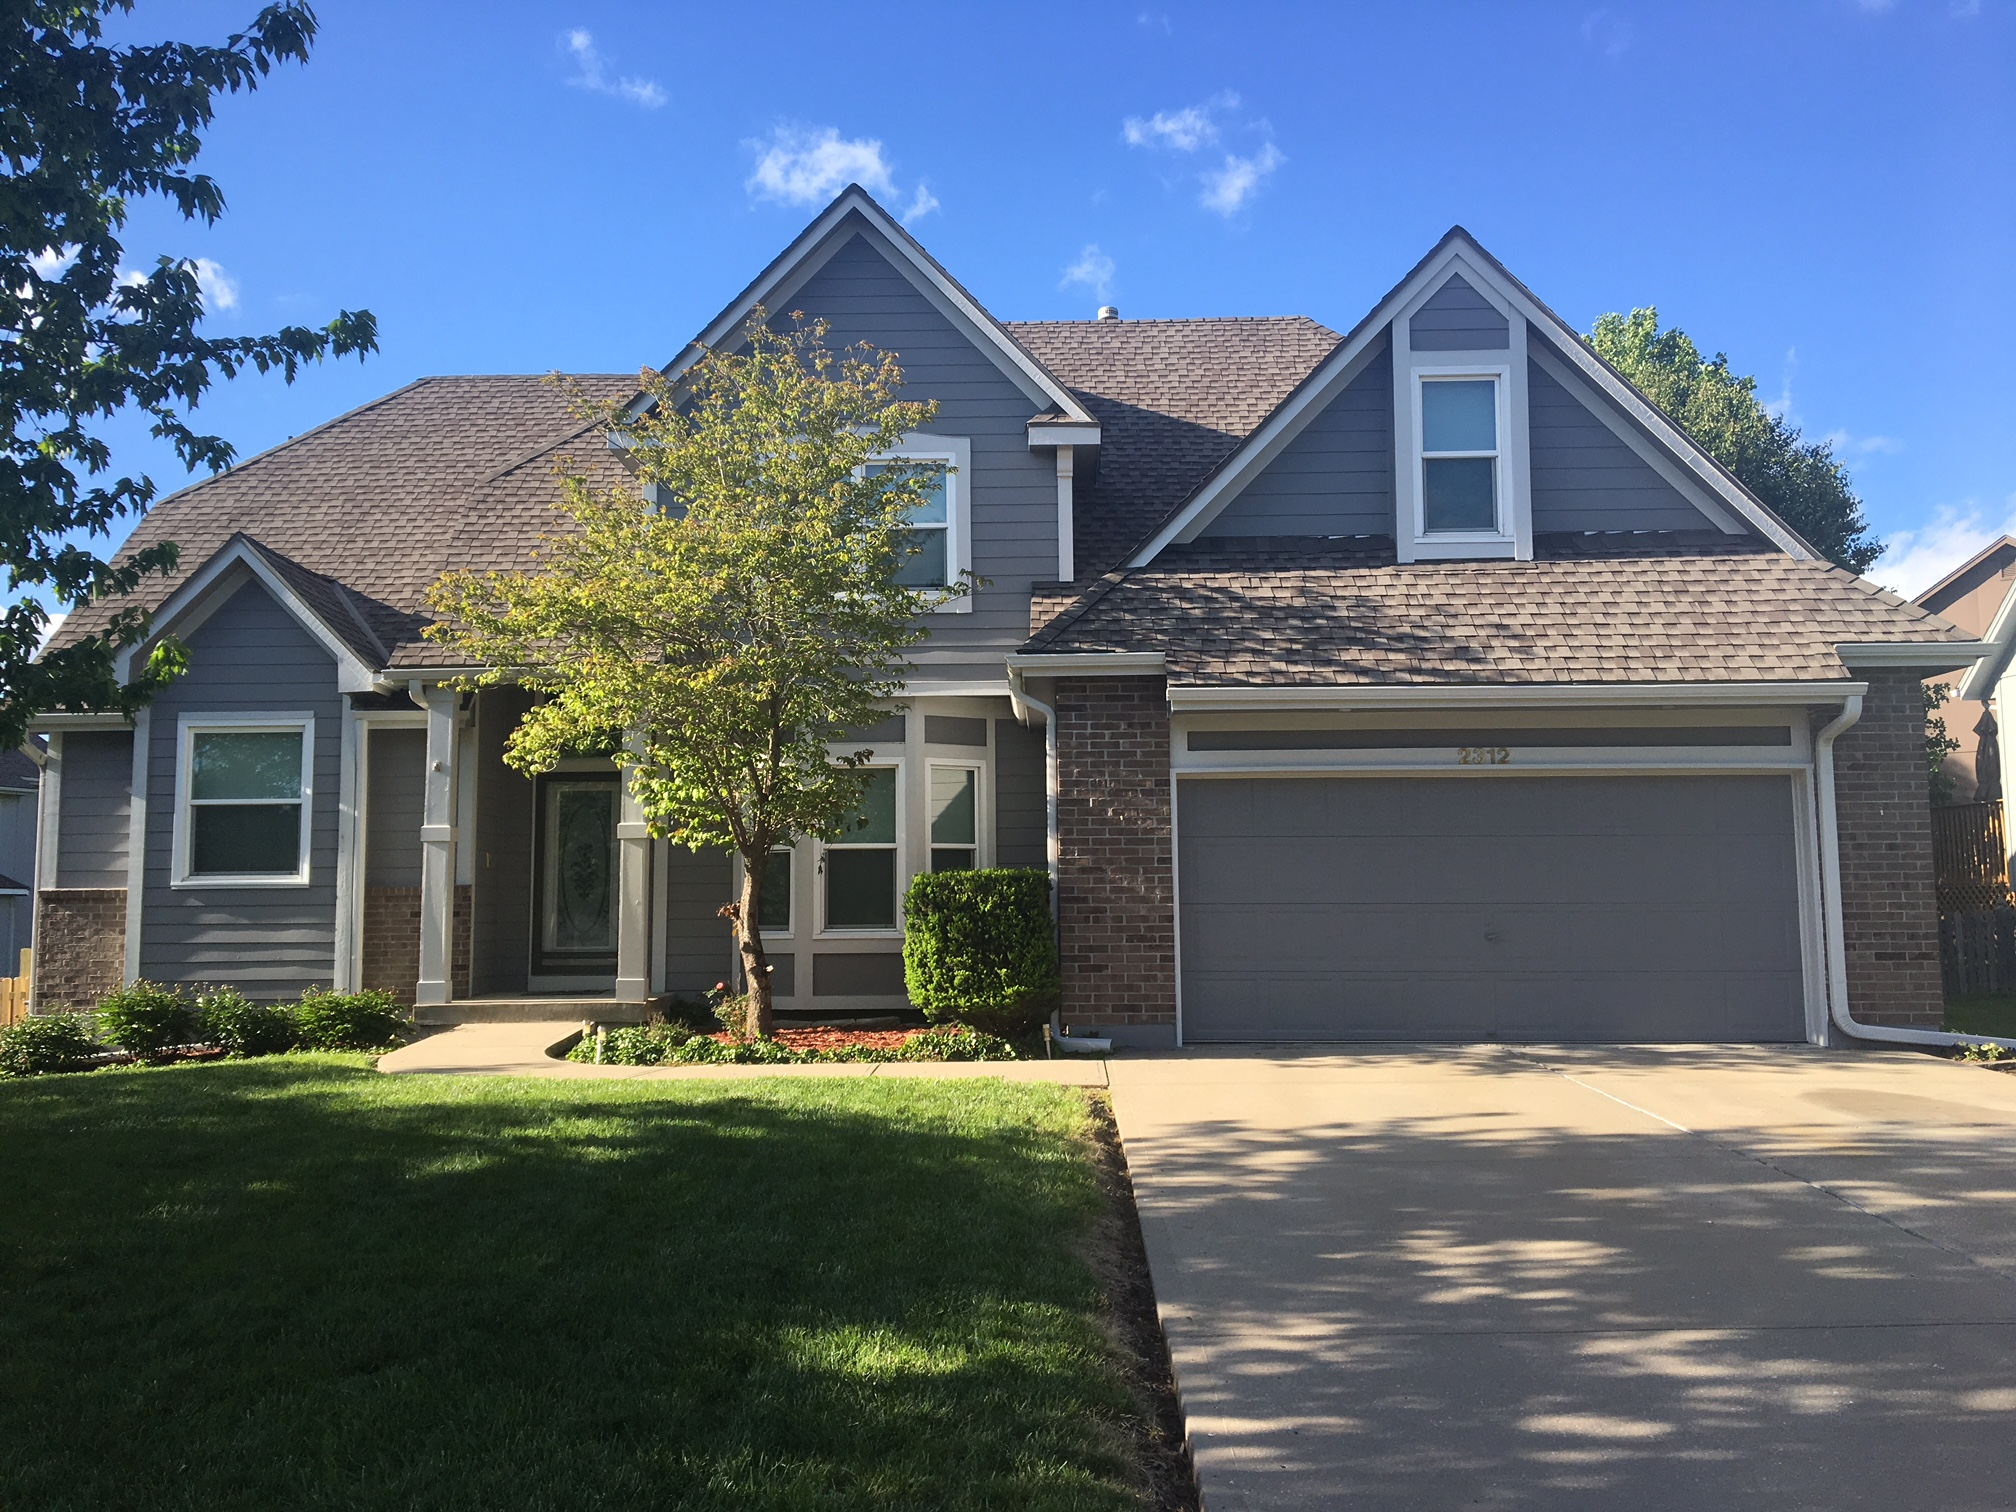 Exterior Painting   Wood Repair in Kansas City - 1st Pace Painting